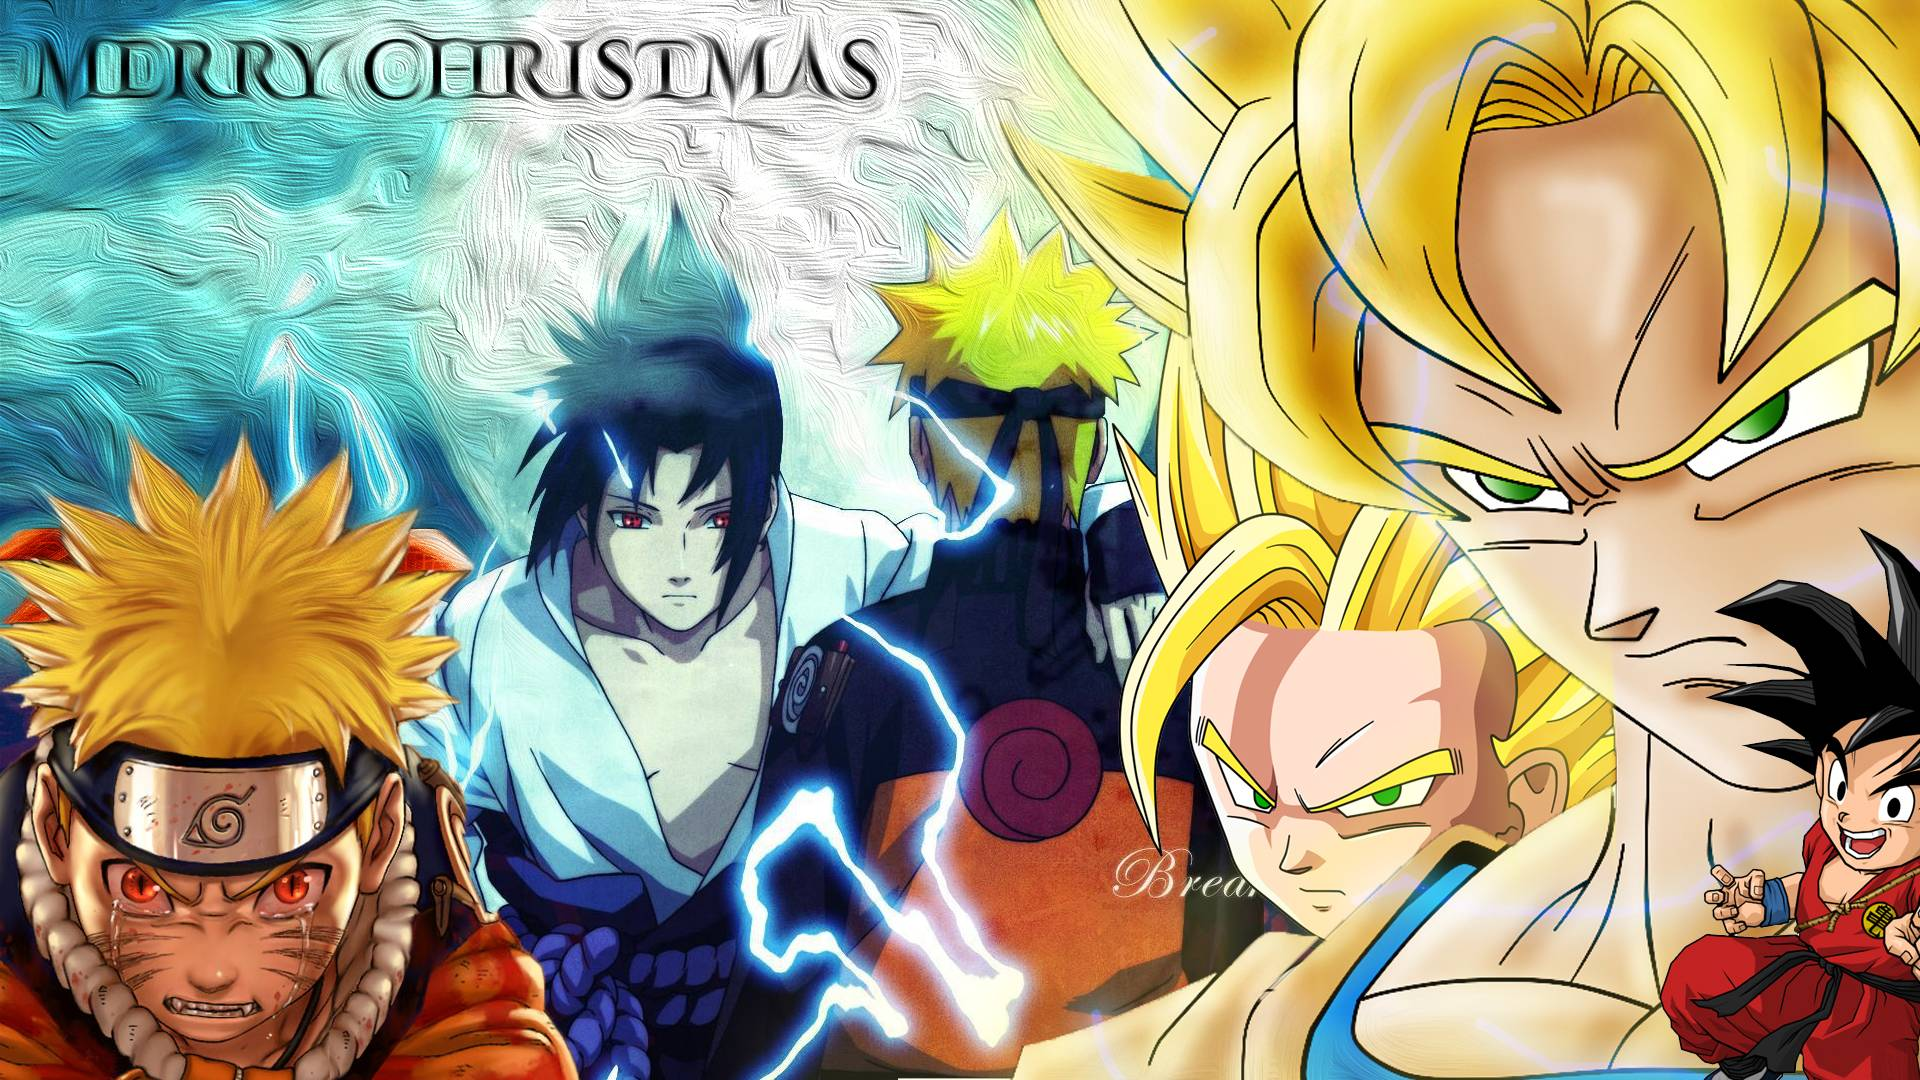 Naruto christmas wallpapers wallpaper cave - Naruto and dragonball z ...